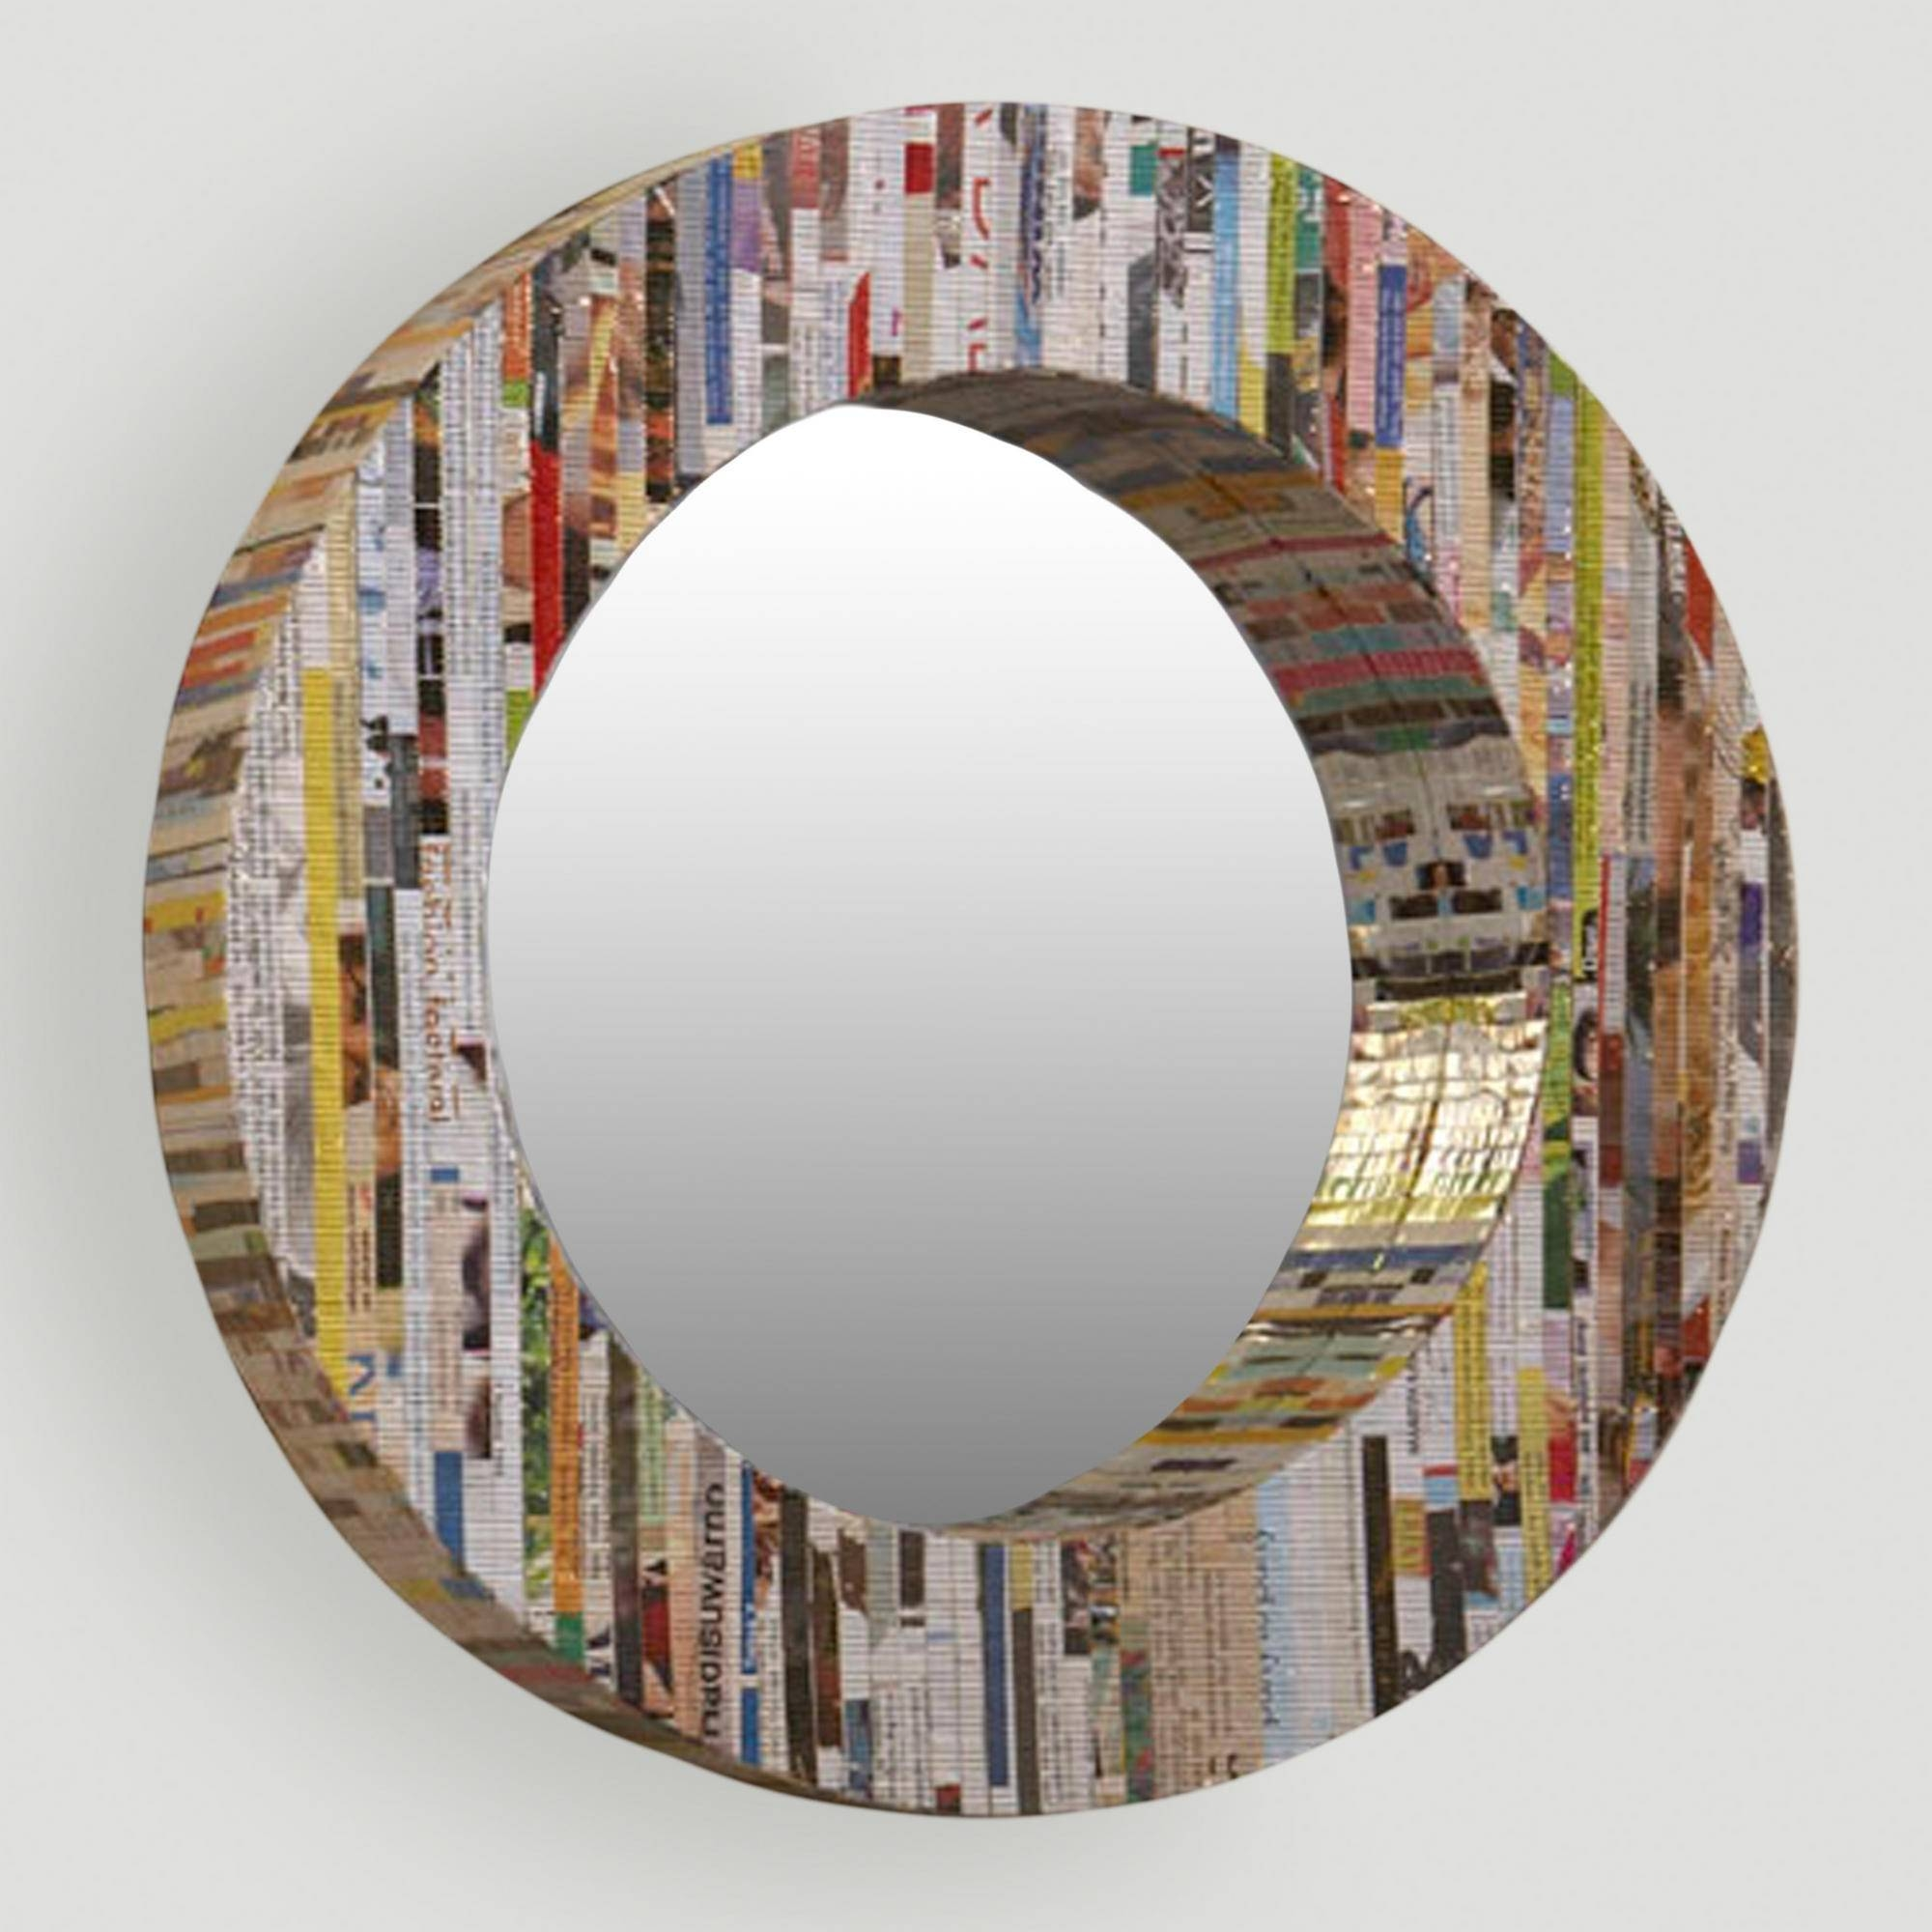 Find This Pin And More On Unique Decorative Wall Mirrors. . The 25 with Circular Wall Mirrors (Image 10 of 25)